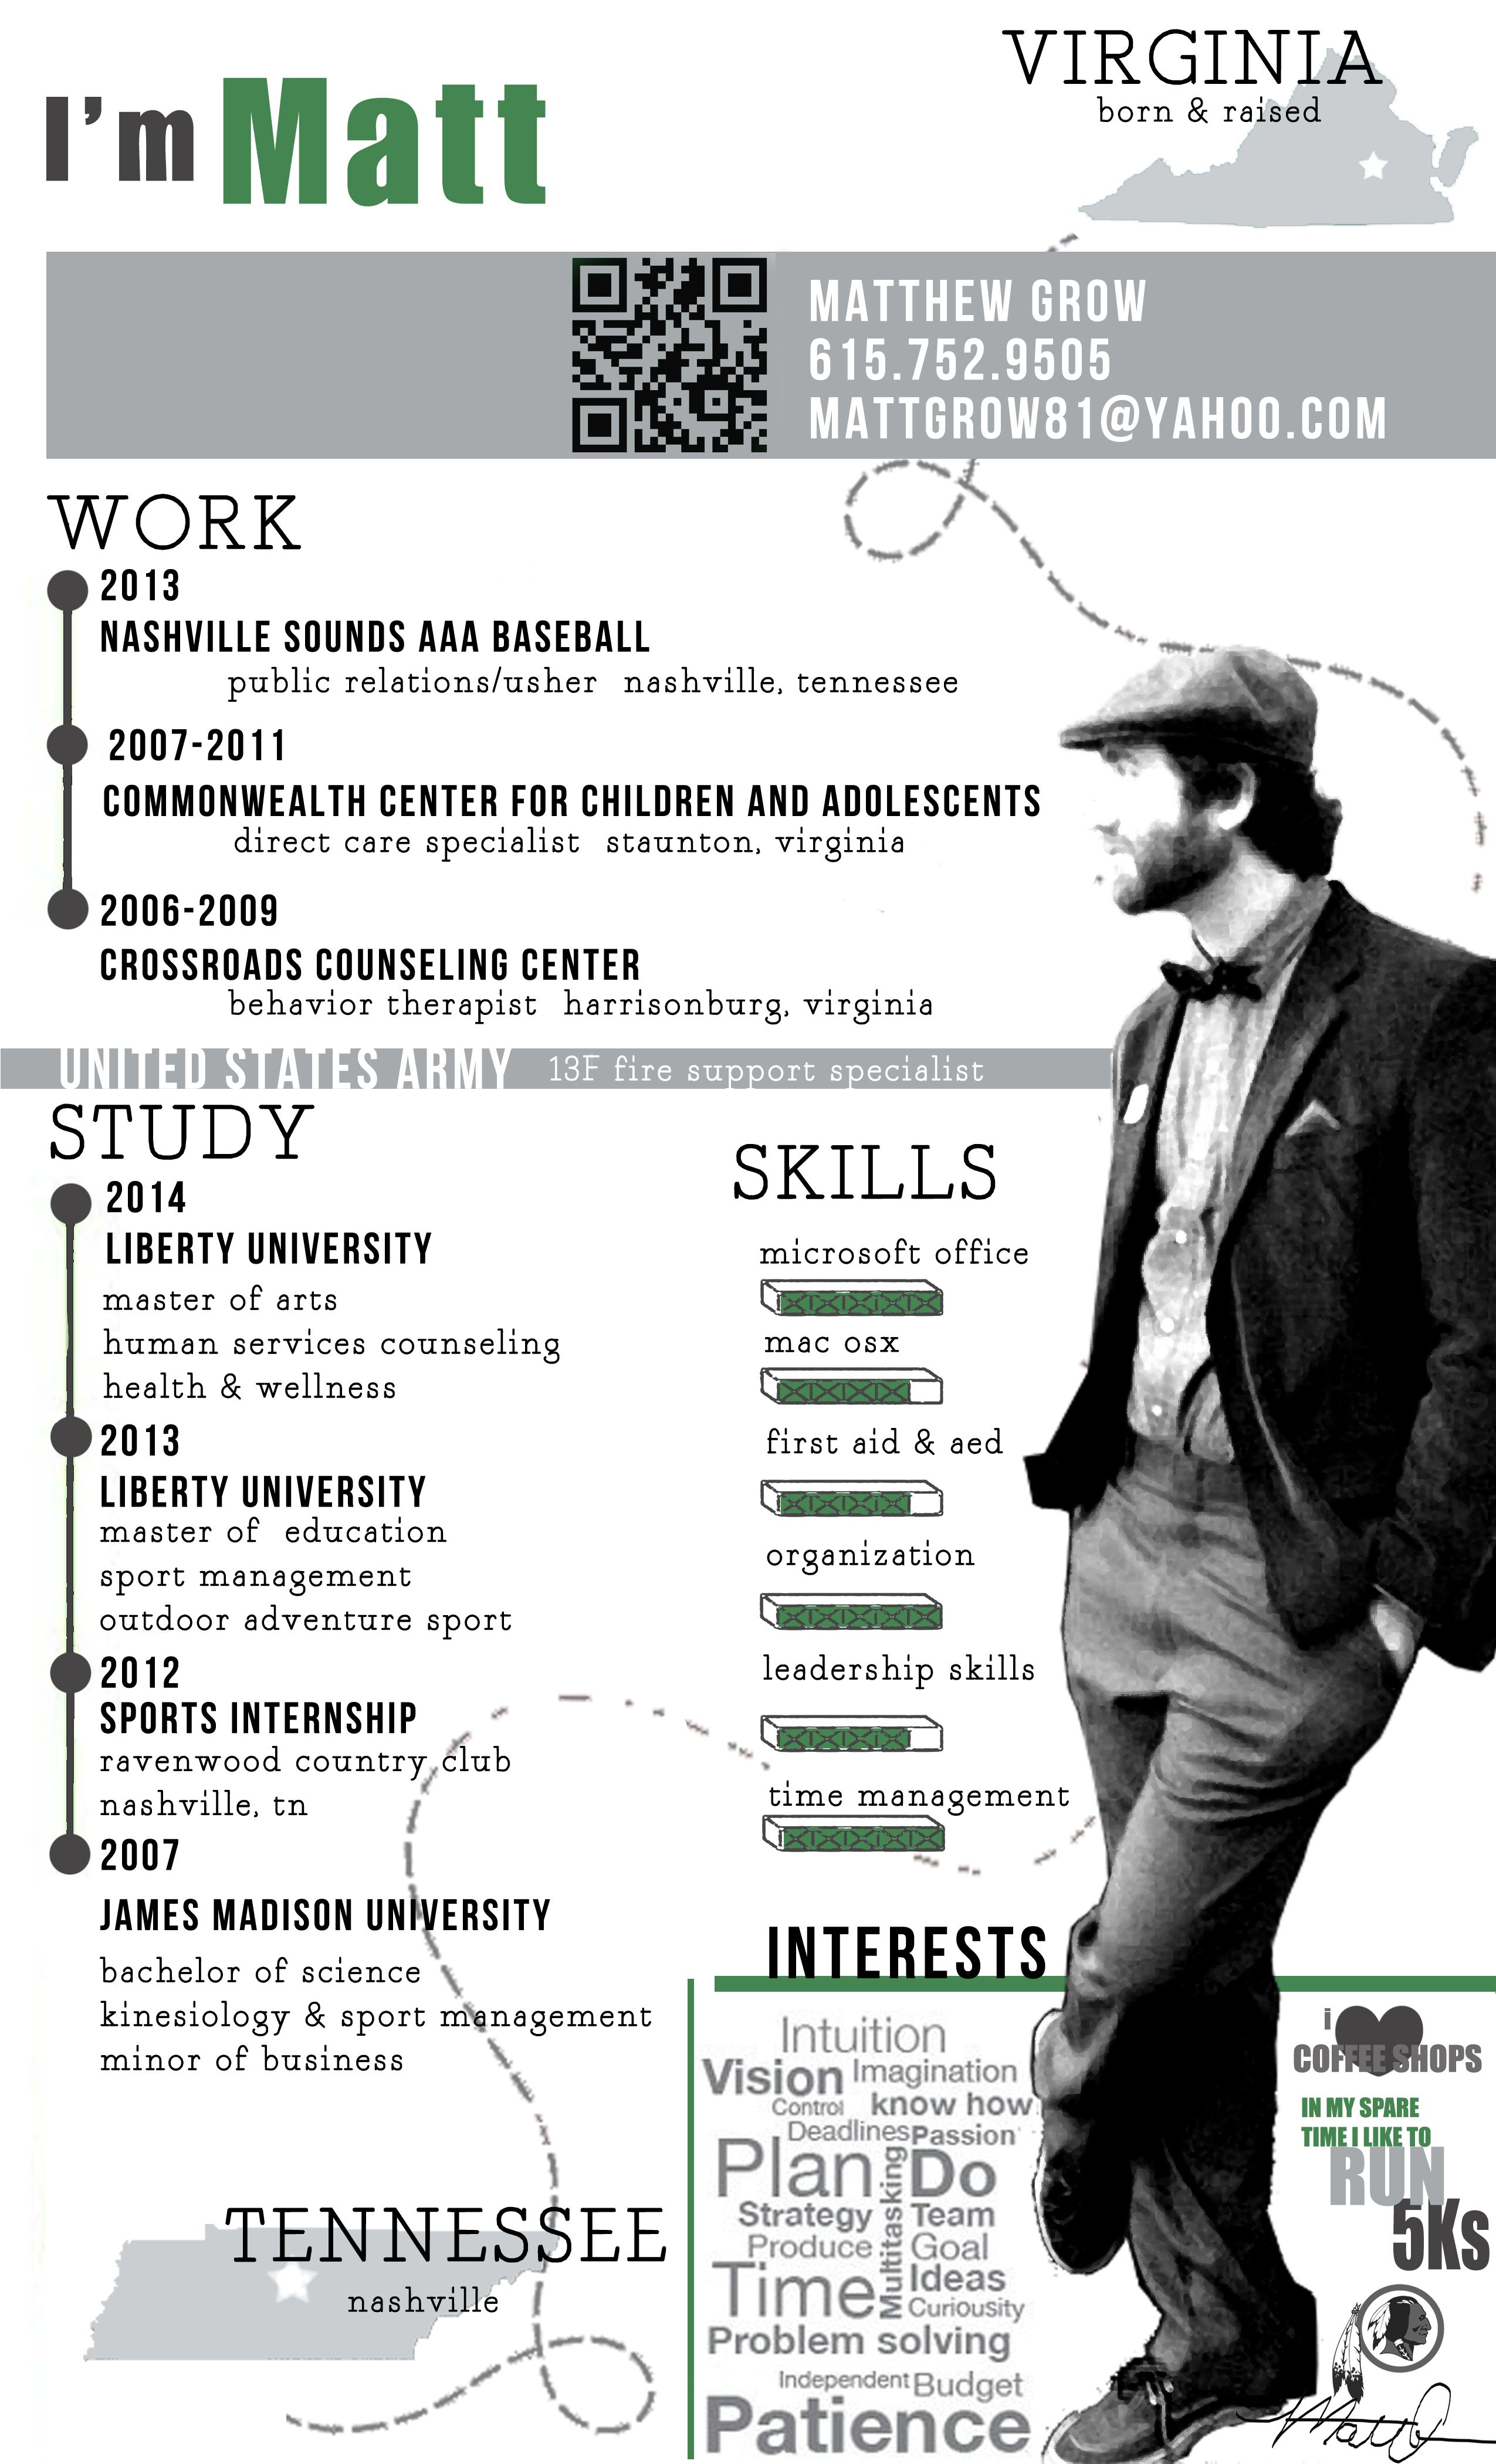 pretty awesome infographic resume created by me! Harmony email ...